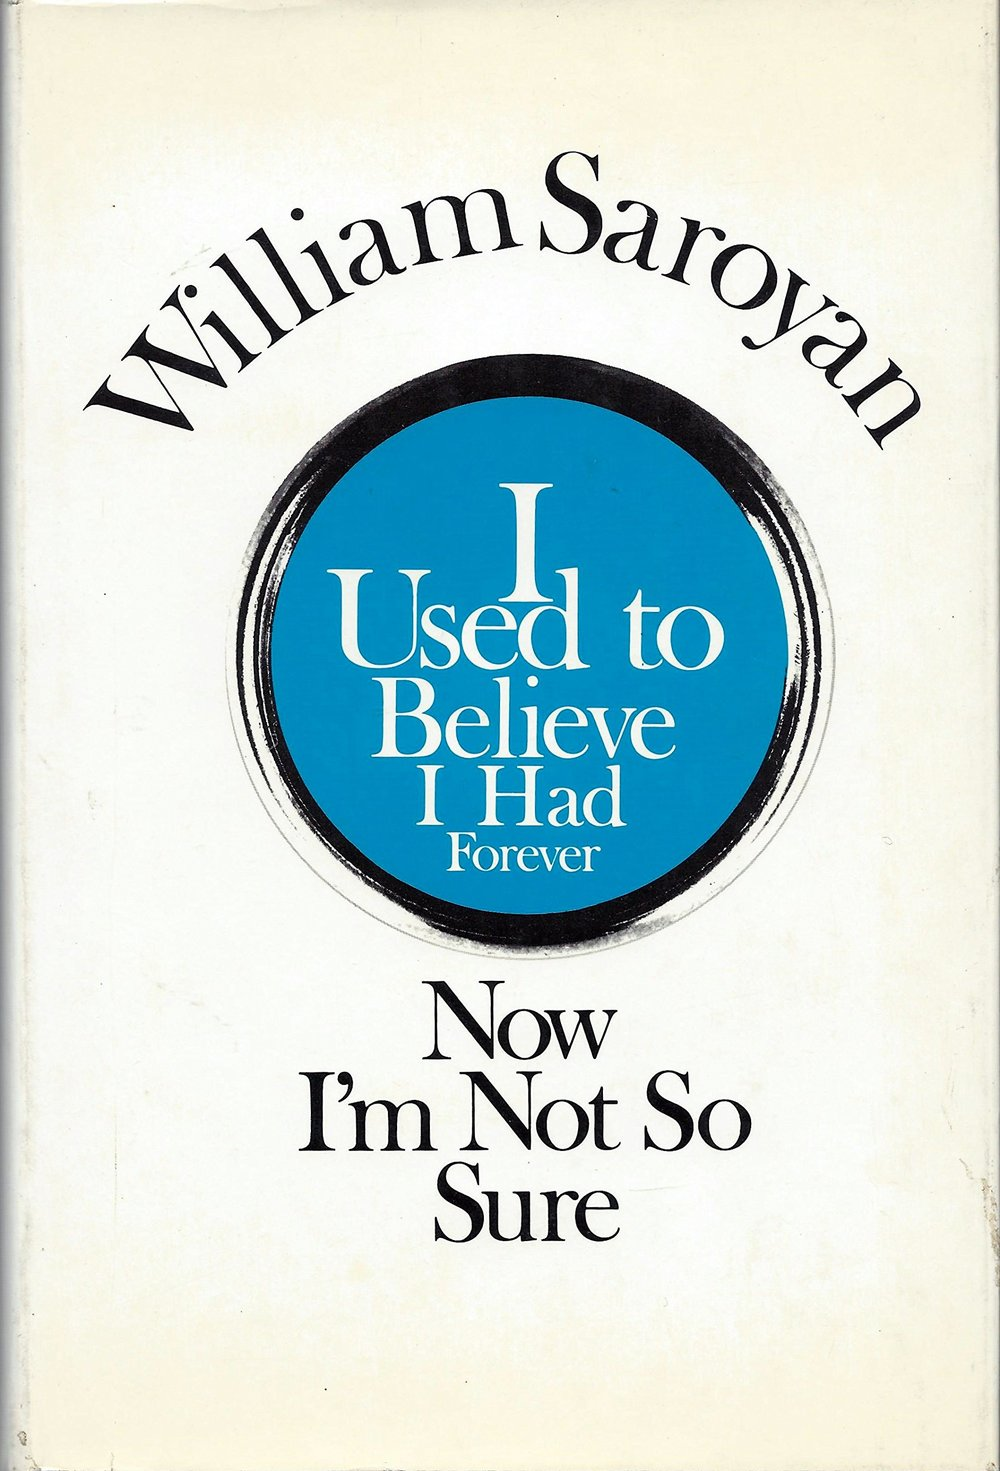 I Used to Believe I Had Forever, Now I'm Not So Sure (1968)